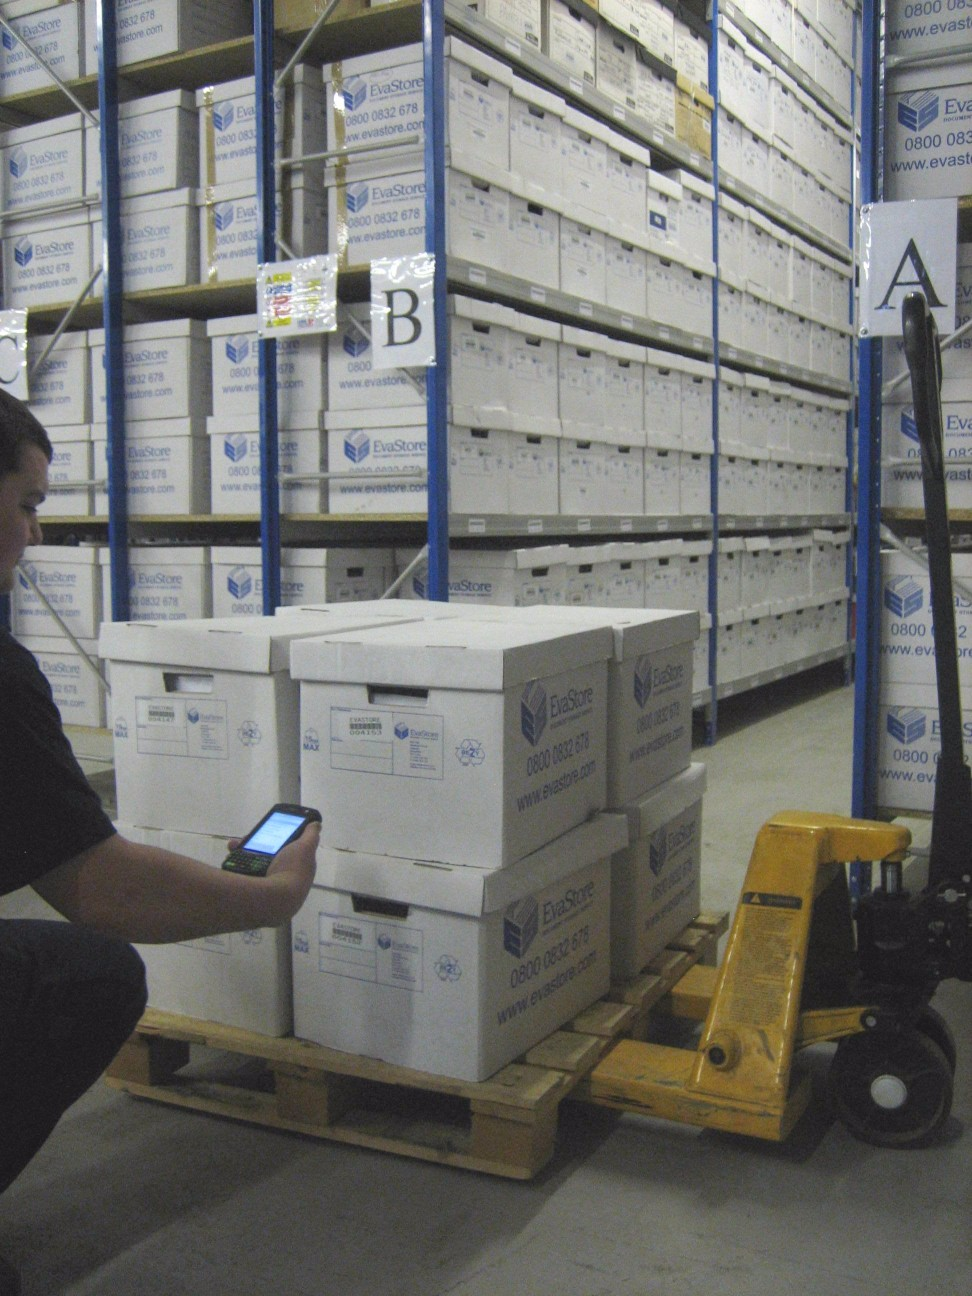 Bulk document collection inside storage facility